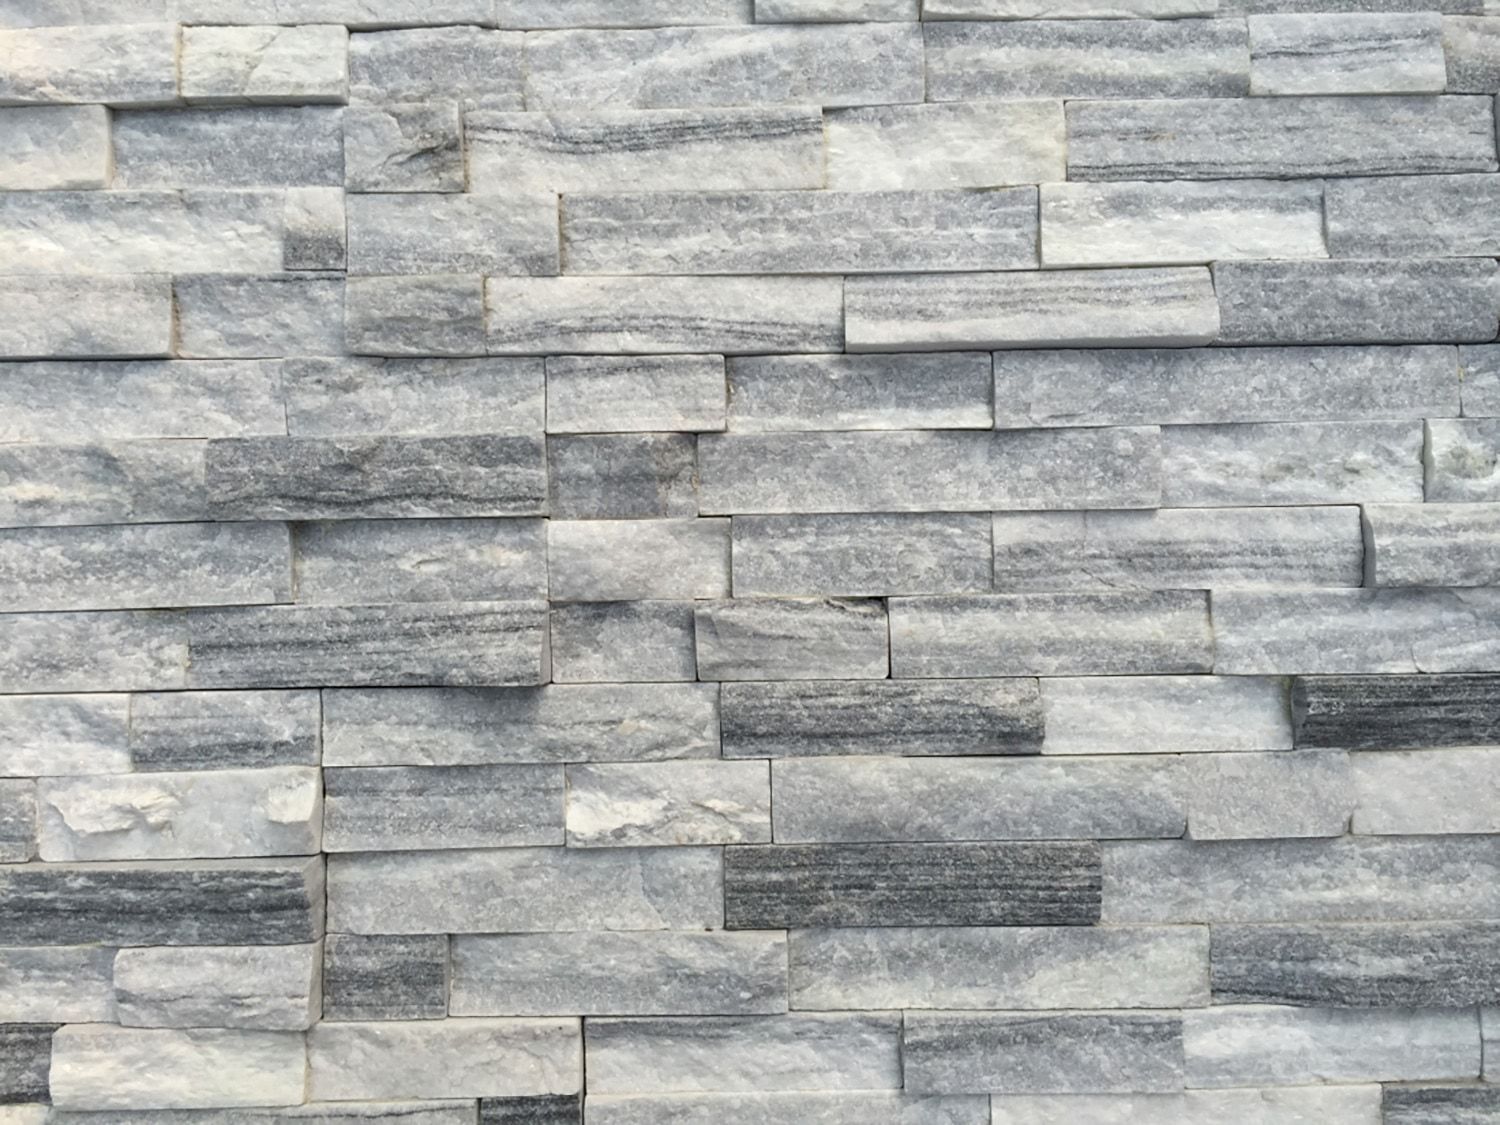 Roterra Stone Siding Natural Ledge Stone Cloudy Gray